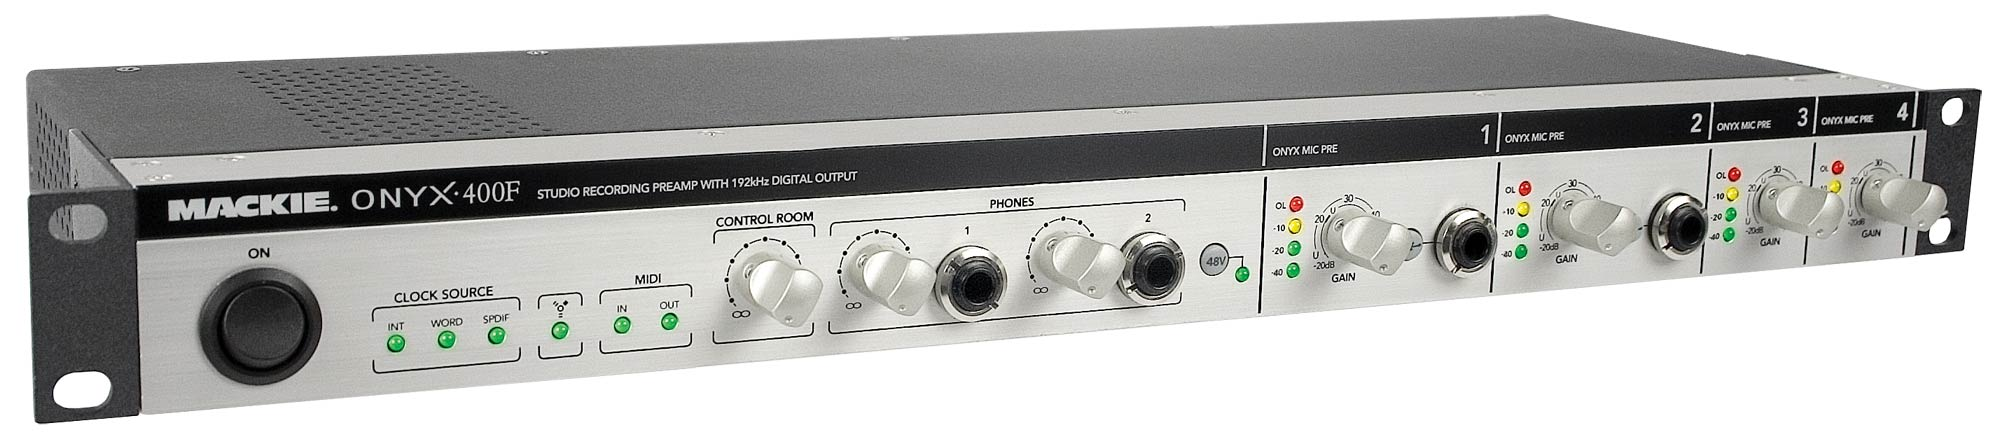 Rikki's Onyx 400F is a fantastic audio interface for recording - but it's important to understand the signal paths to record successfully with it.